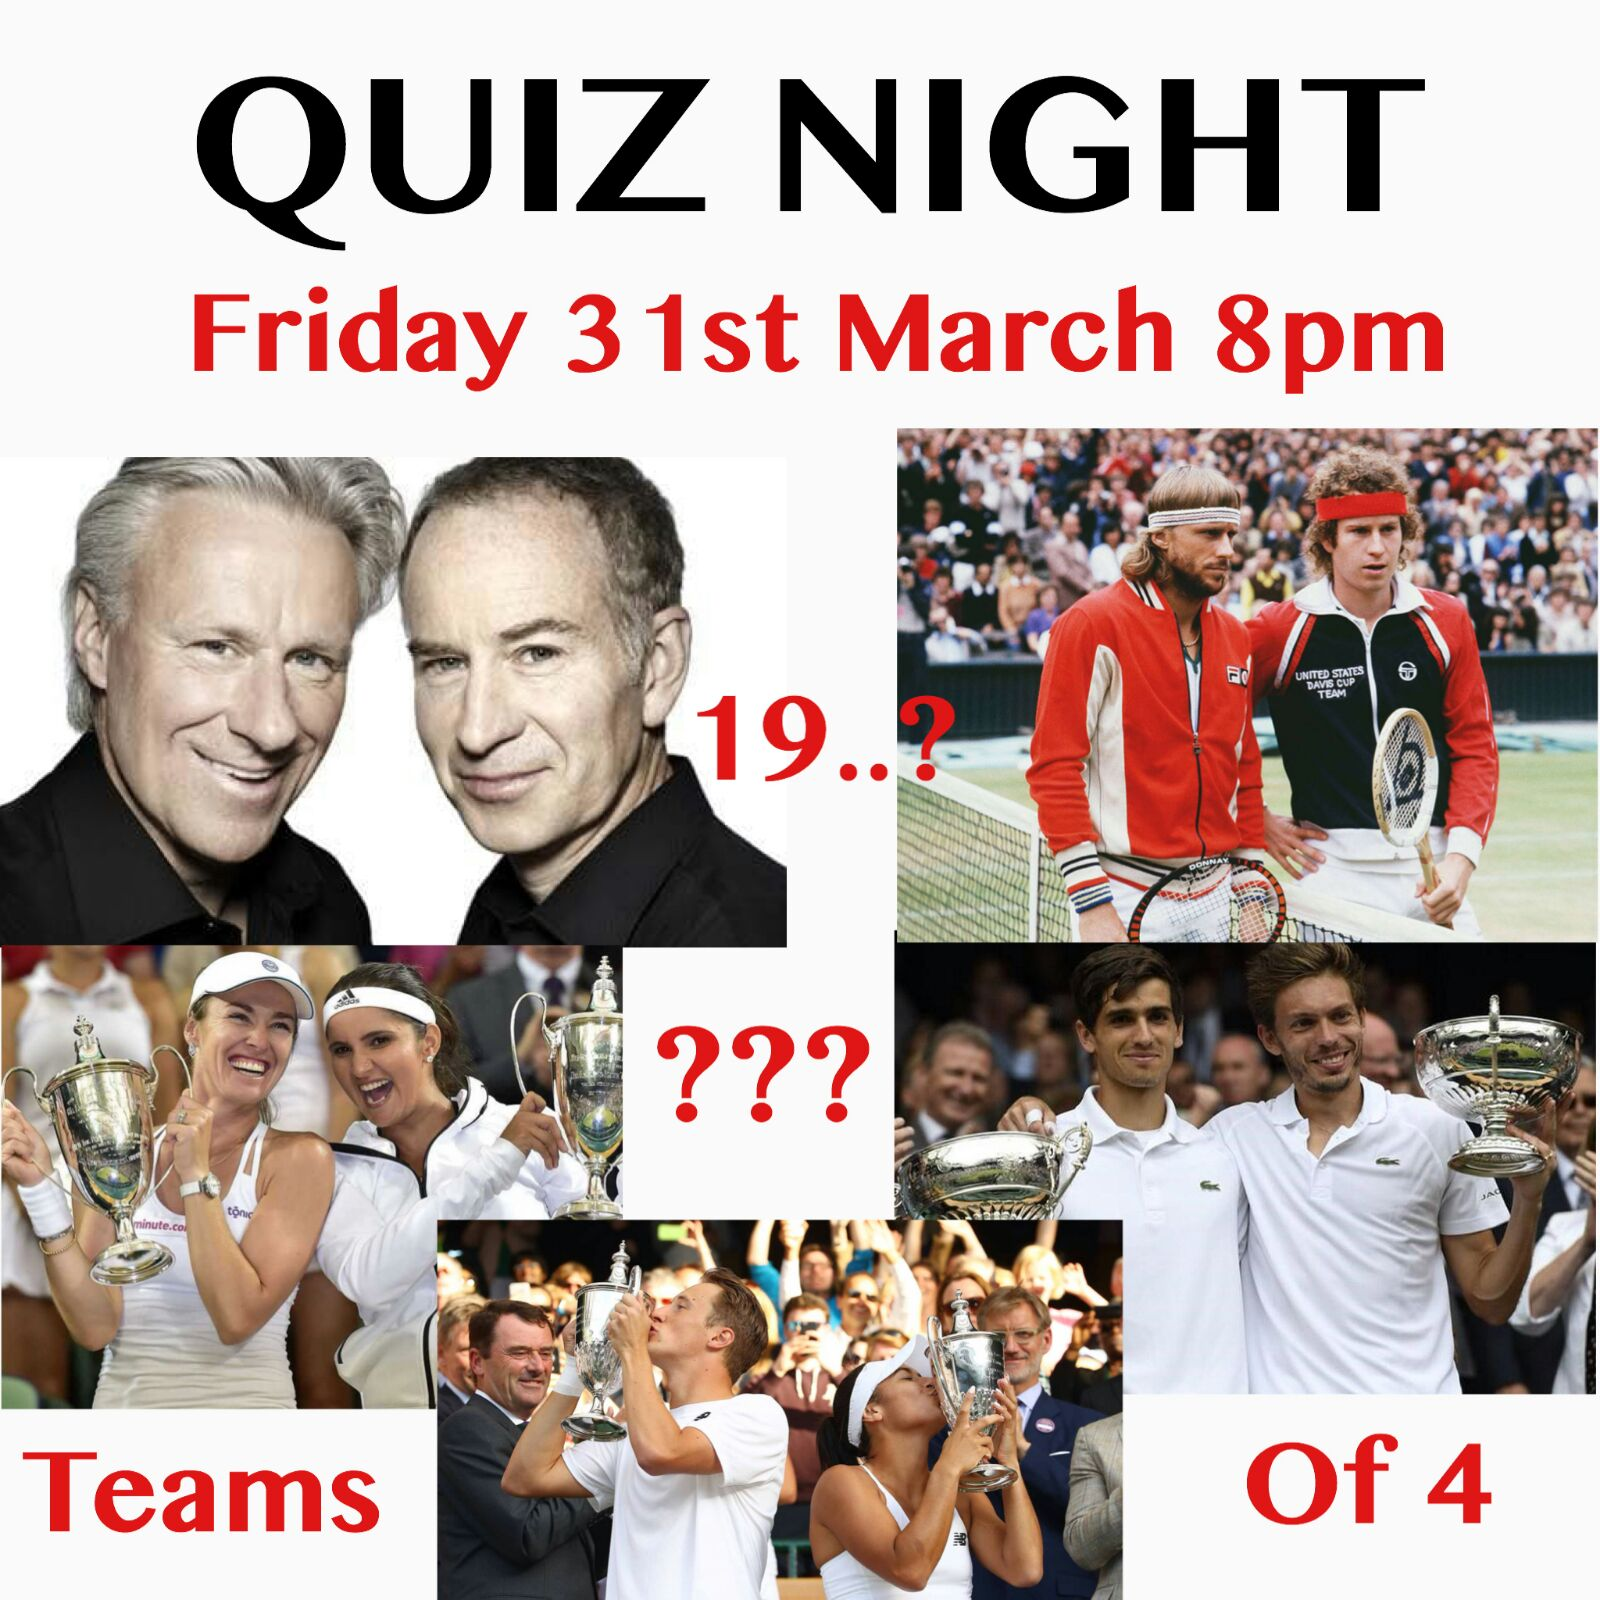 Quiz night – hope to see you all there!